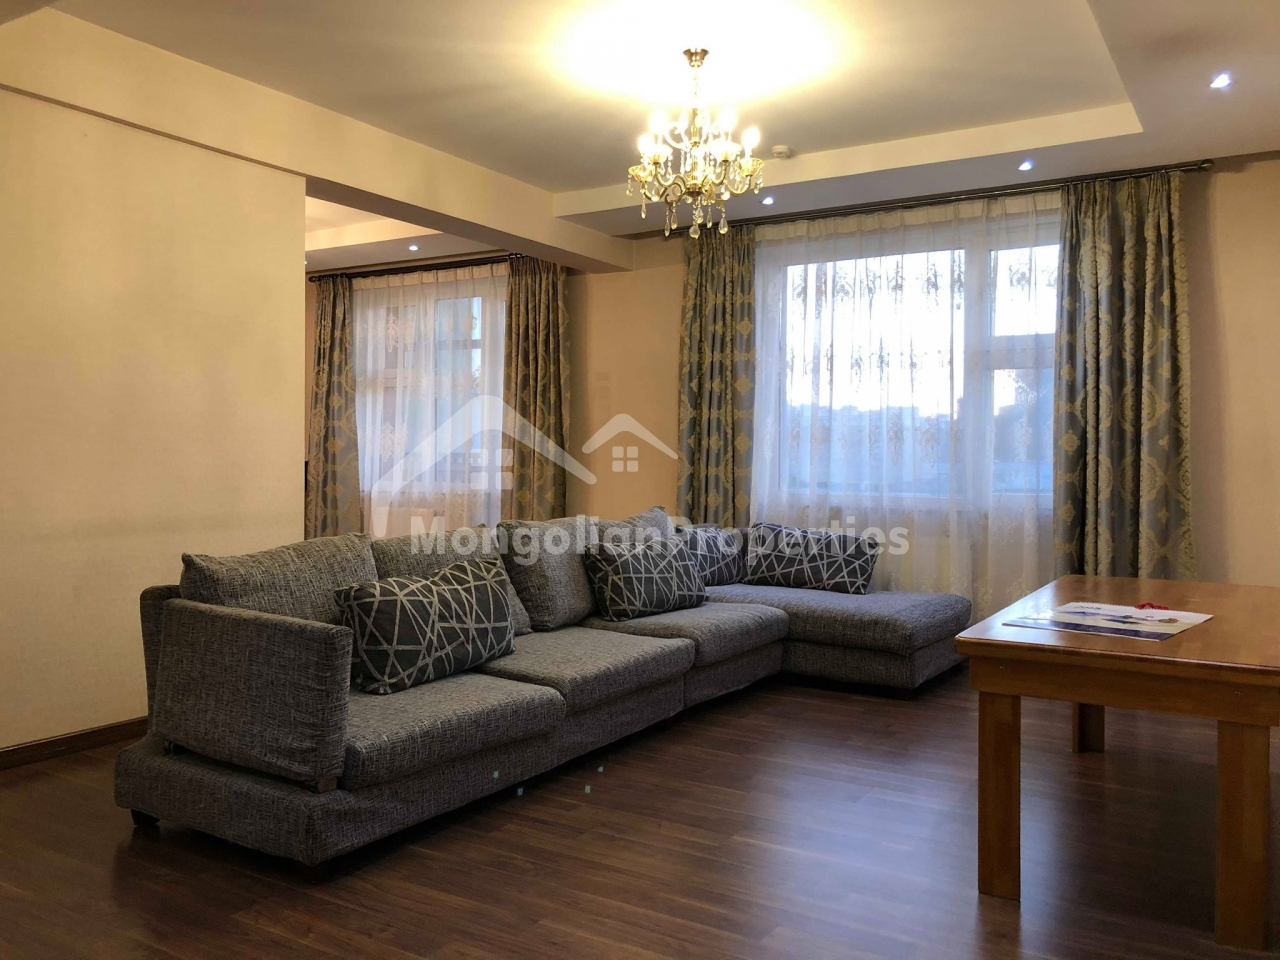 Spacious 2 bedroom apartment is for rent at Khans Vill complex